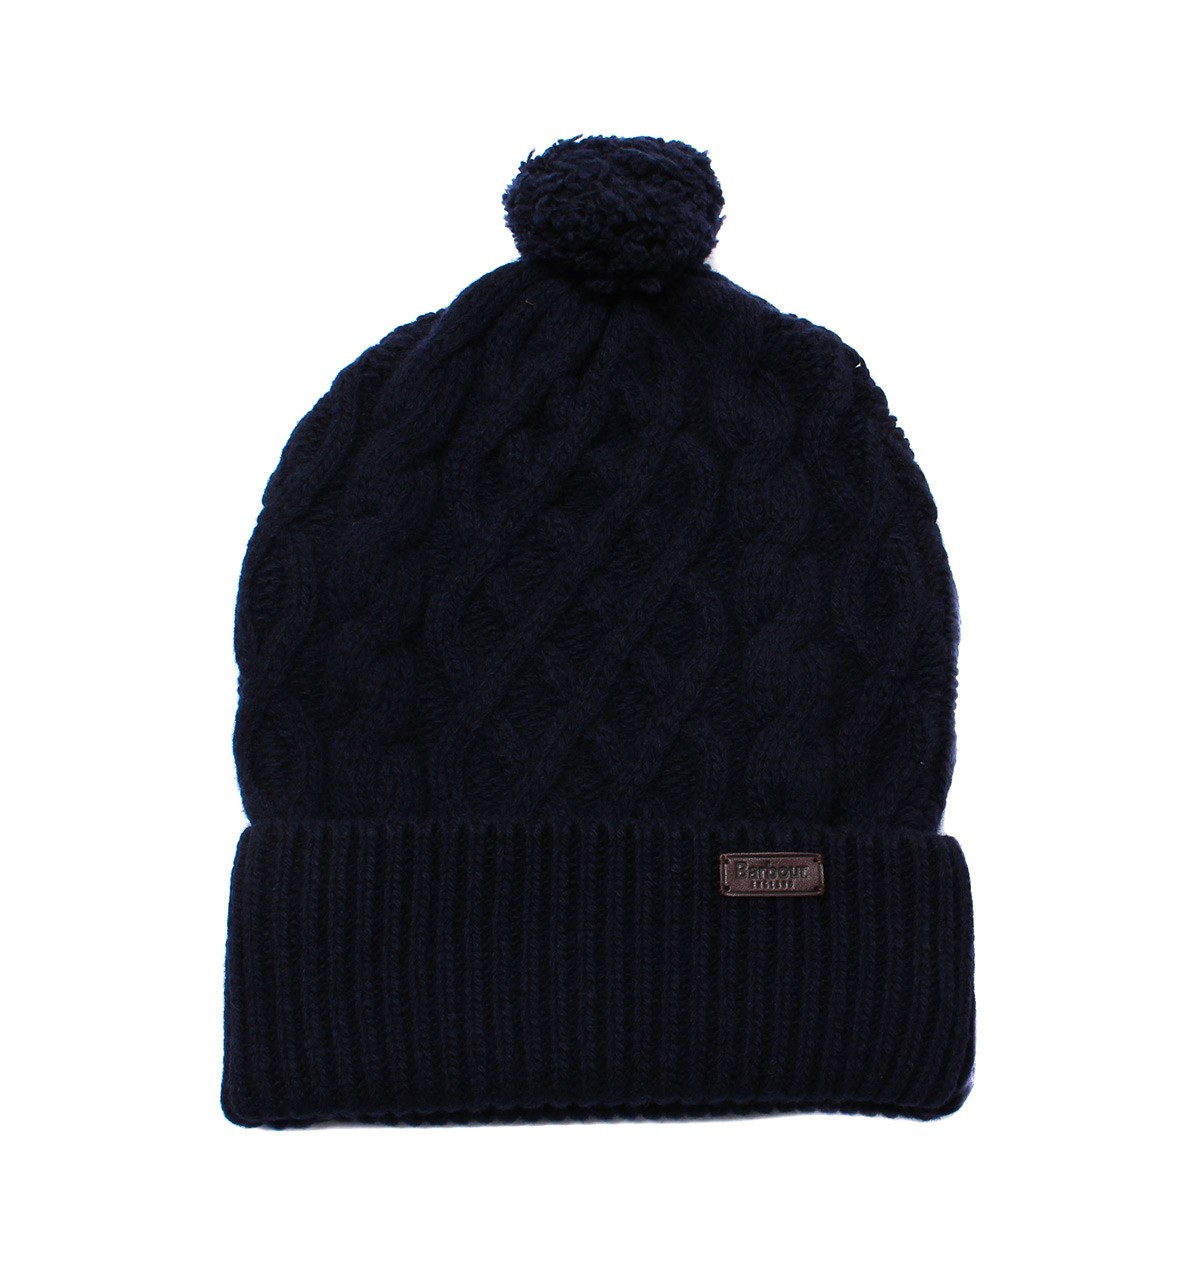 Best Of Barbour Navy Cable Knit Beanie Hat Cable Knit Hat Of Fresh 40 Pics Cable Knit Hat